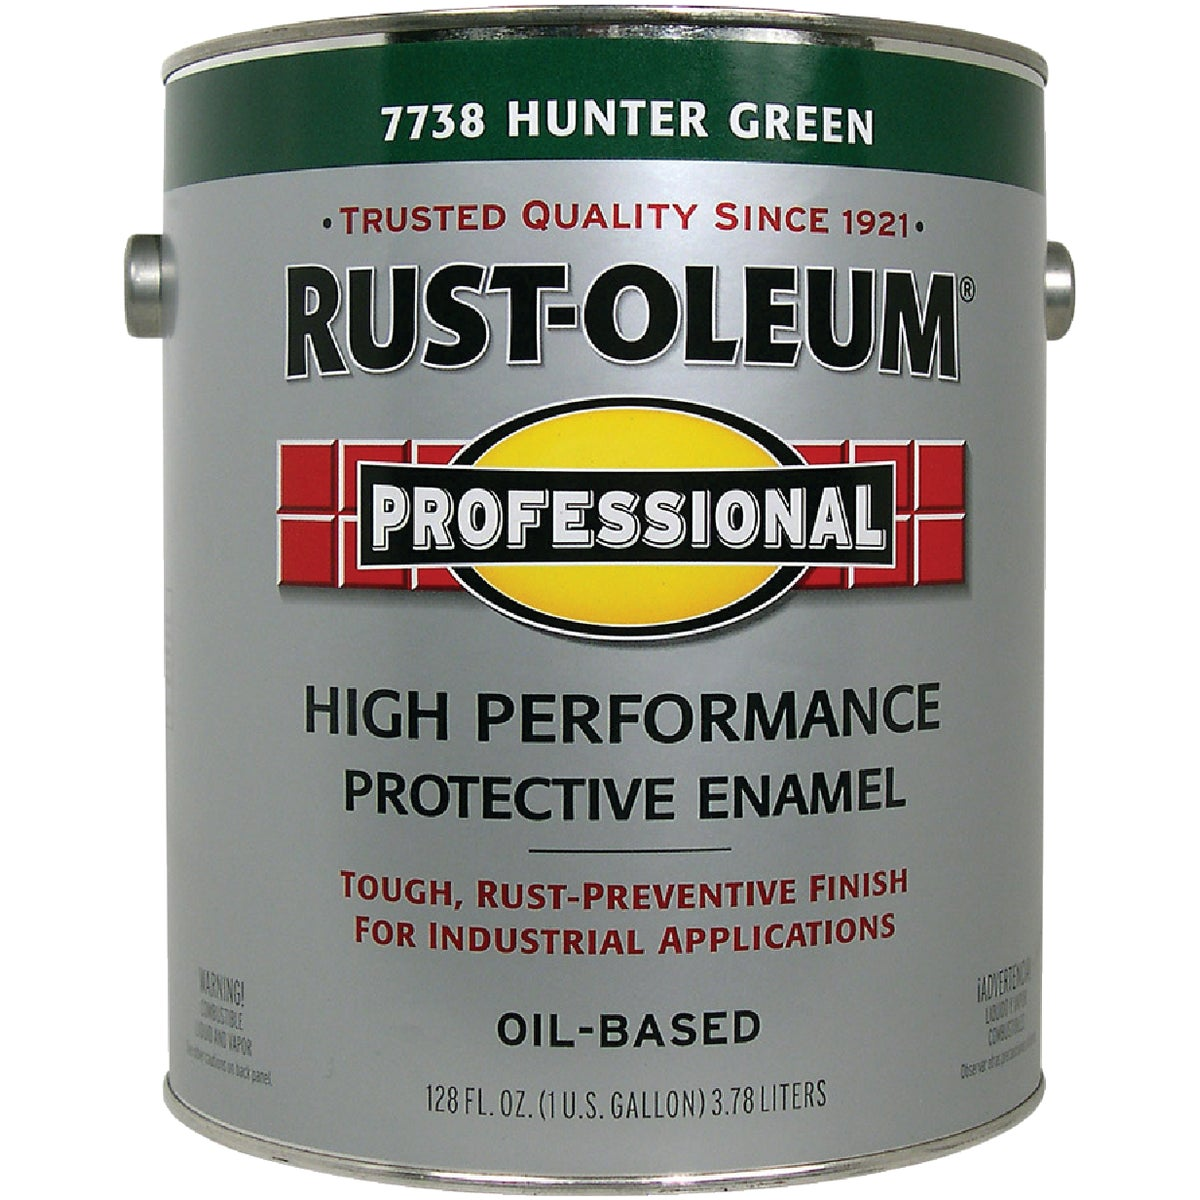 HUNTER GREEN ENAMEL - 7738-402 by Rustoleum